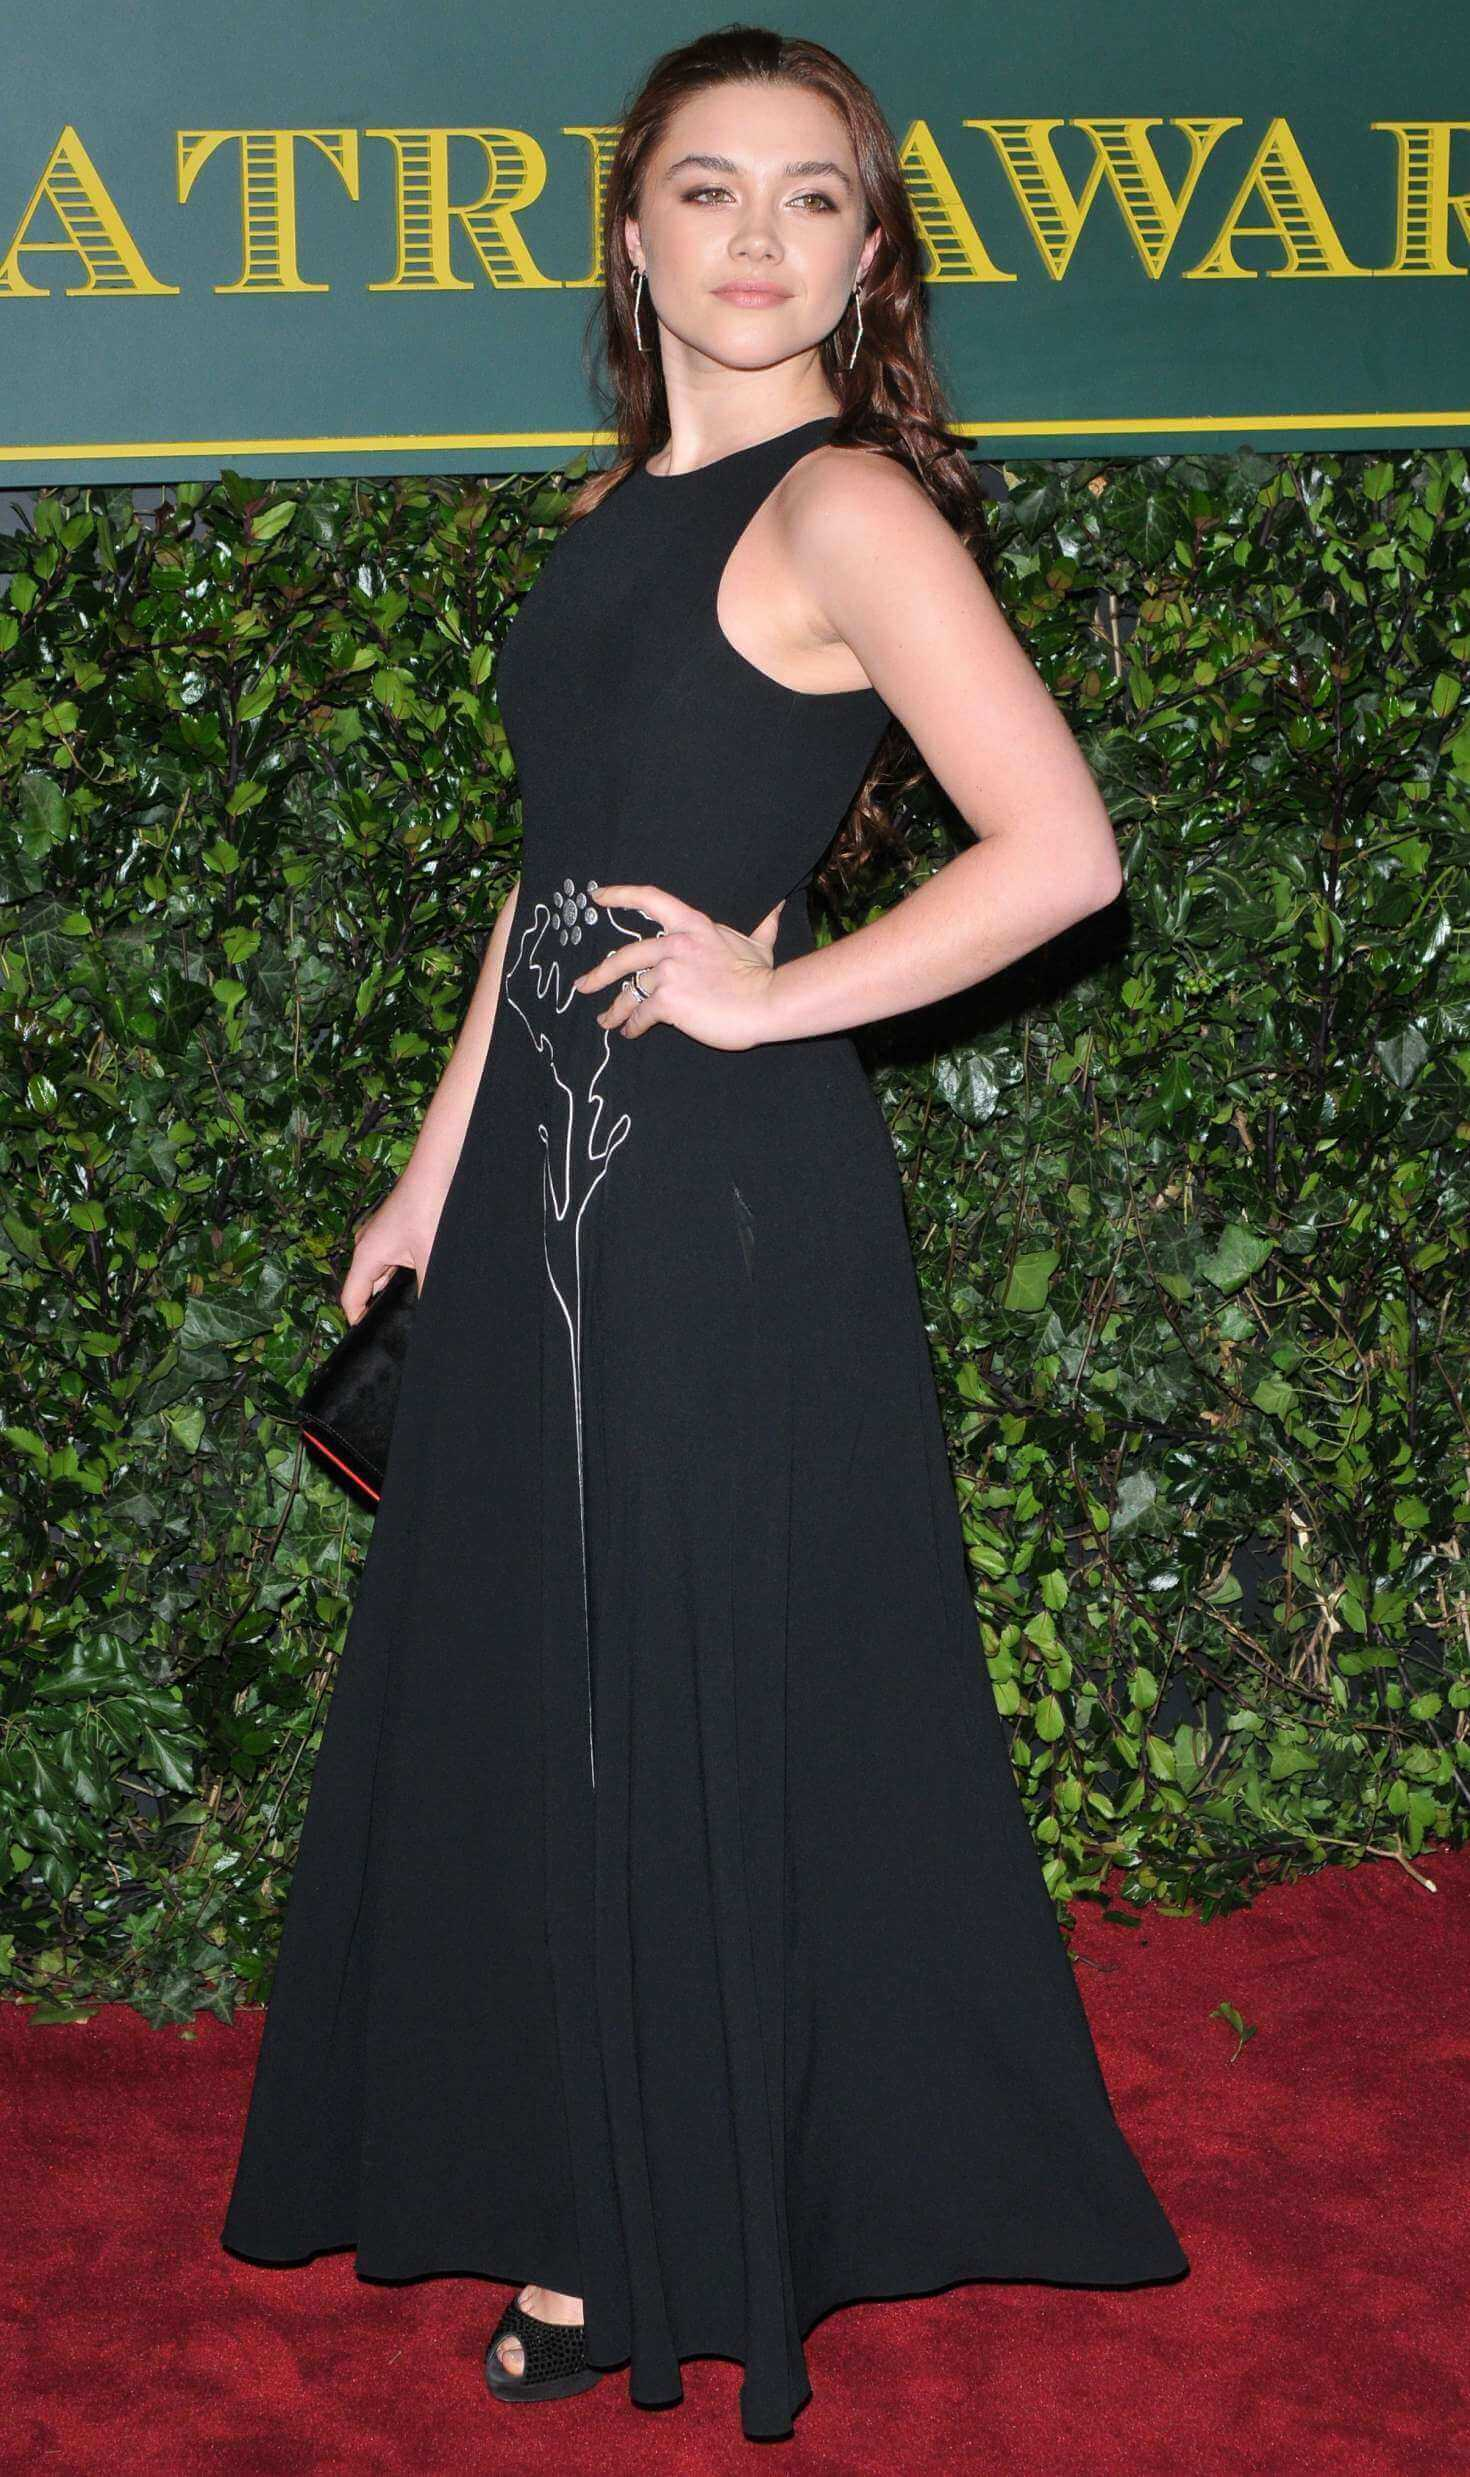 Florence Pugh long black dress pic (2)